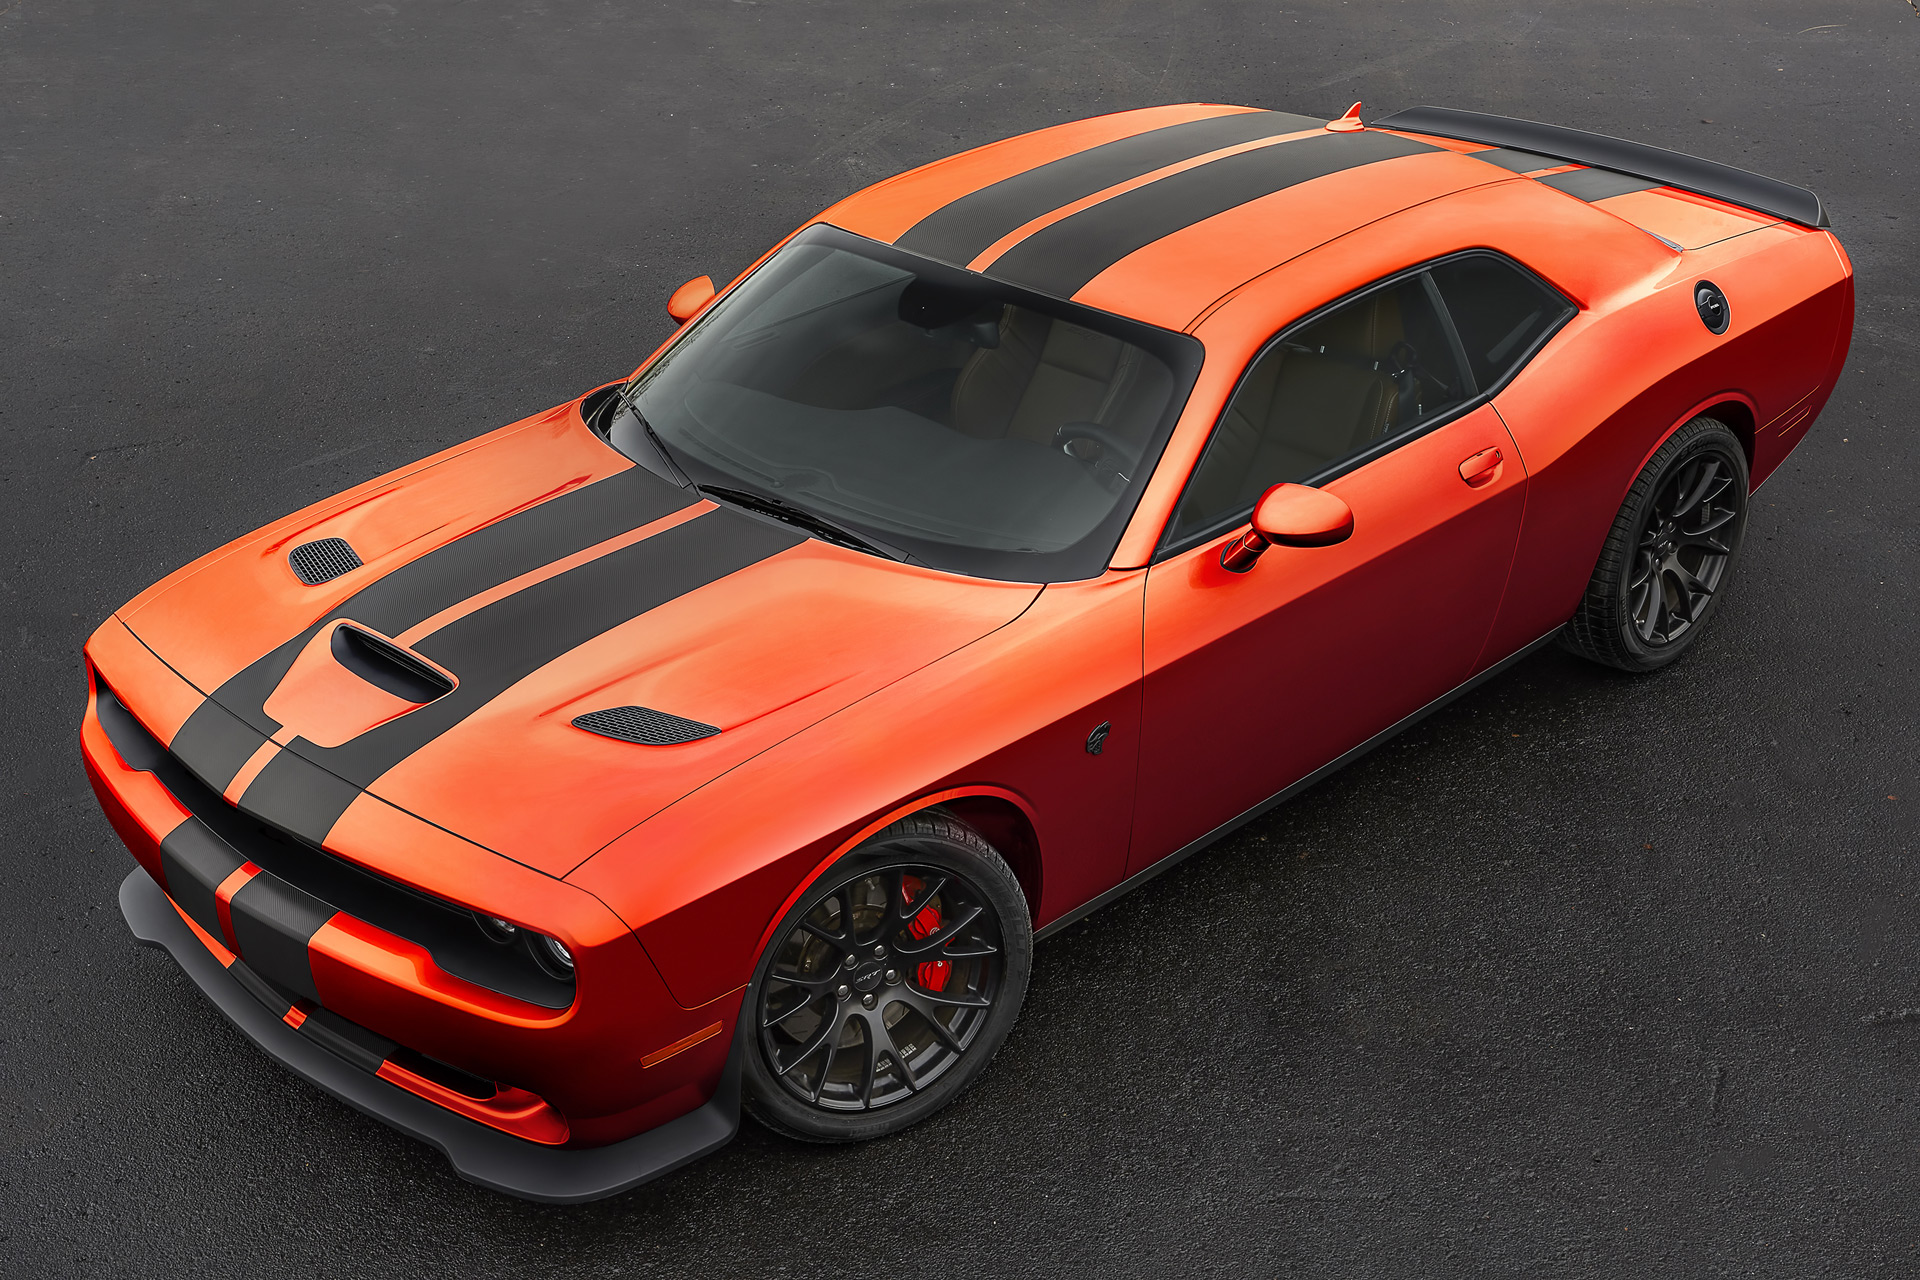 new and used dodge challenger prices photos reviews specs the car connection. Black Bedroom Furniture Sets. Home Design Ideas